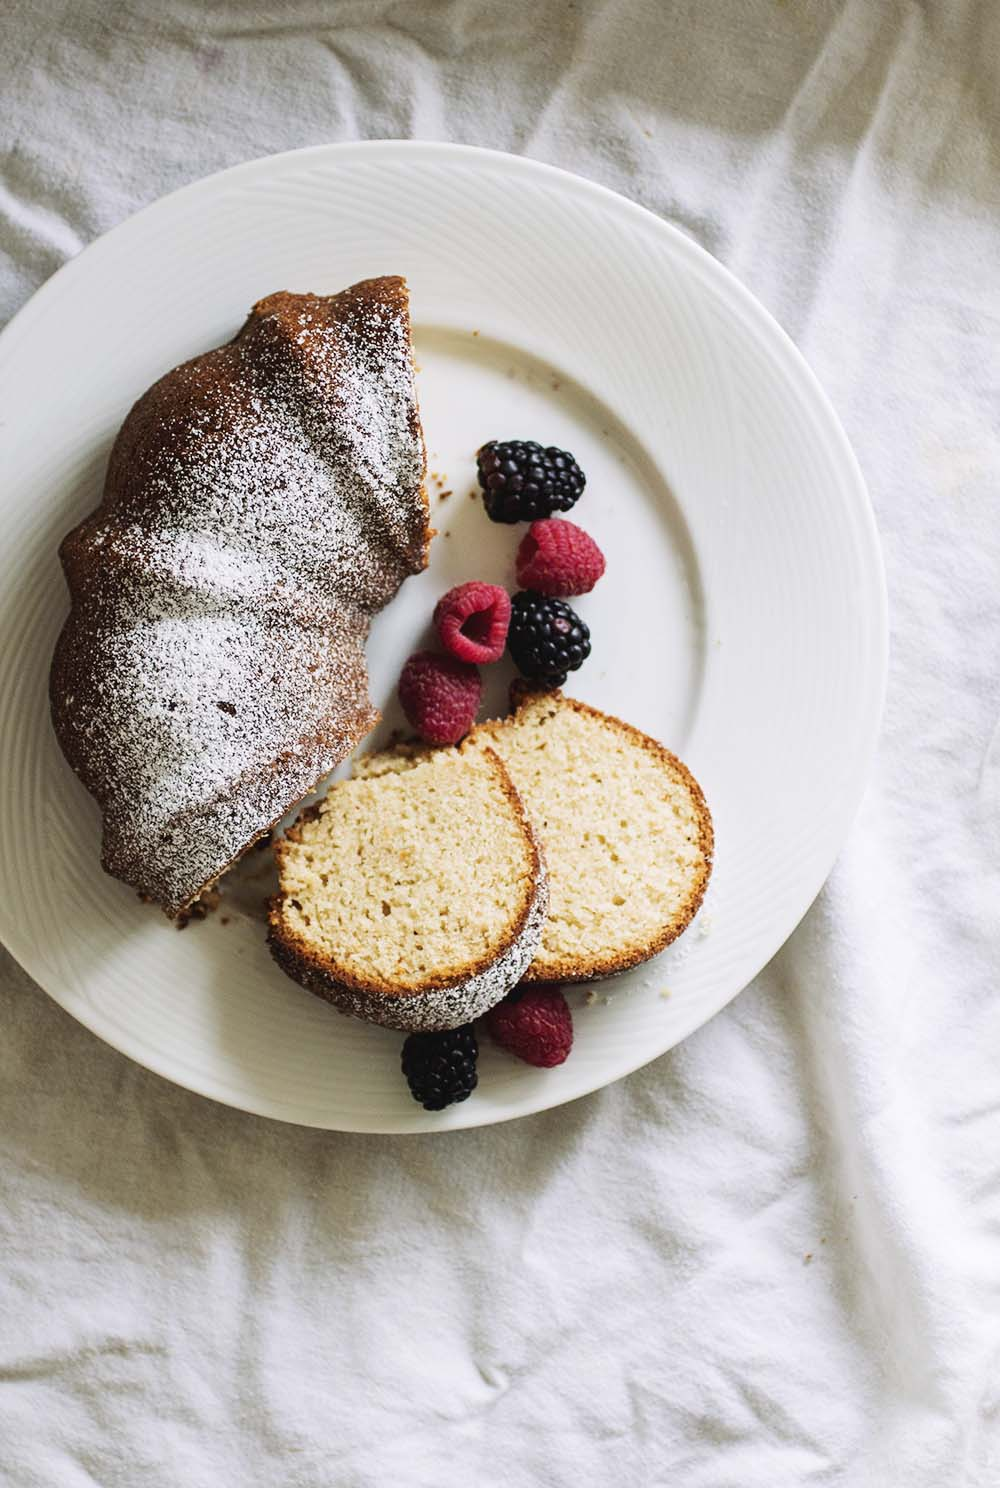 Sherry Wine Cake Recipe From Scratch